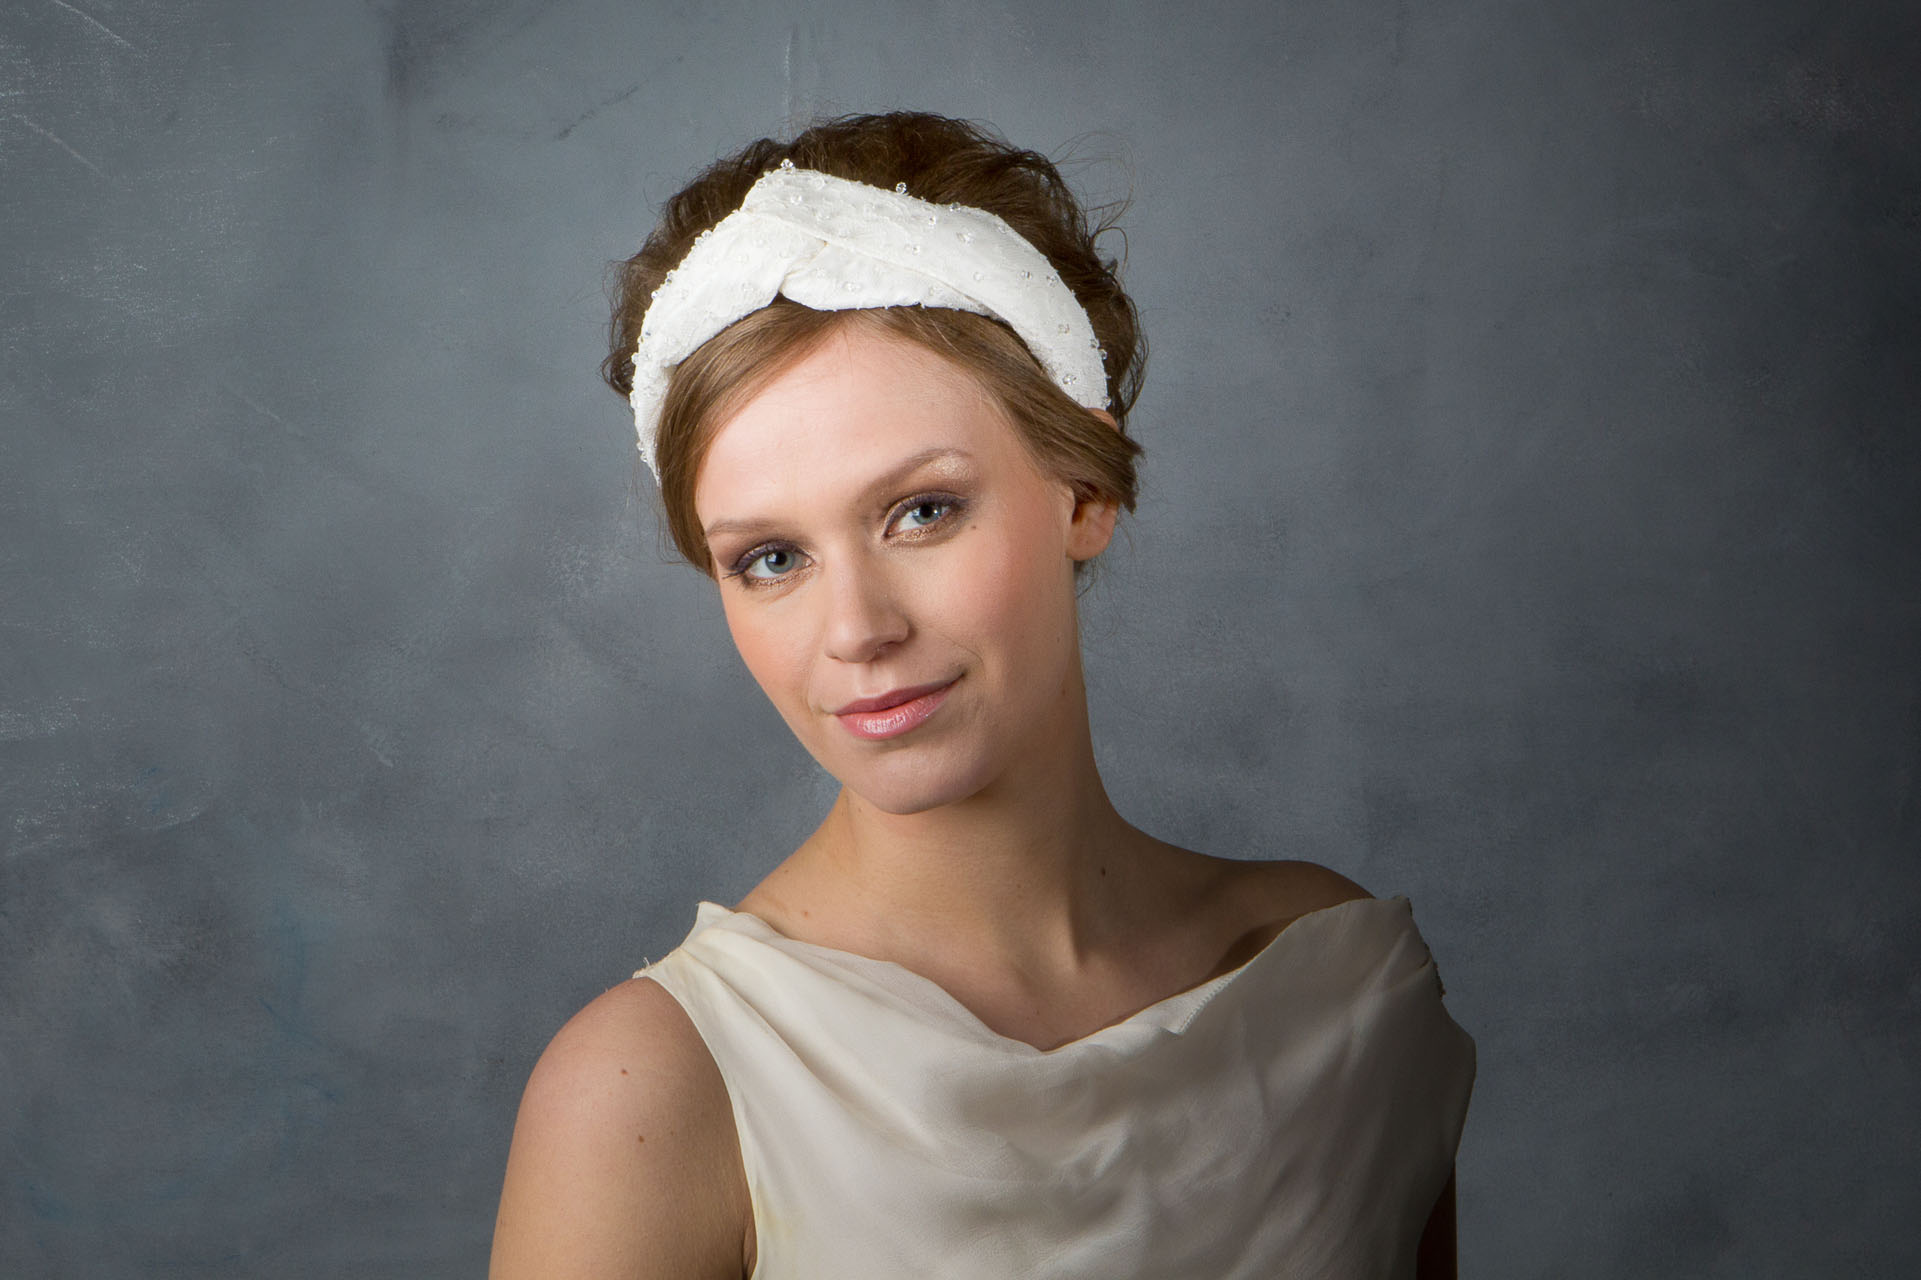 ae2556accfc Chantilly Lace and Silk Turban Style Bridal Headpiece with Swarovski  Crystals